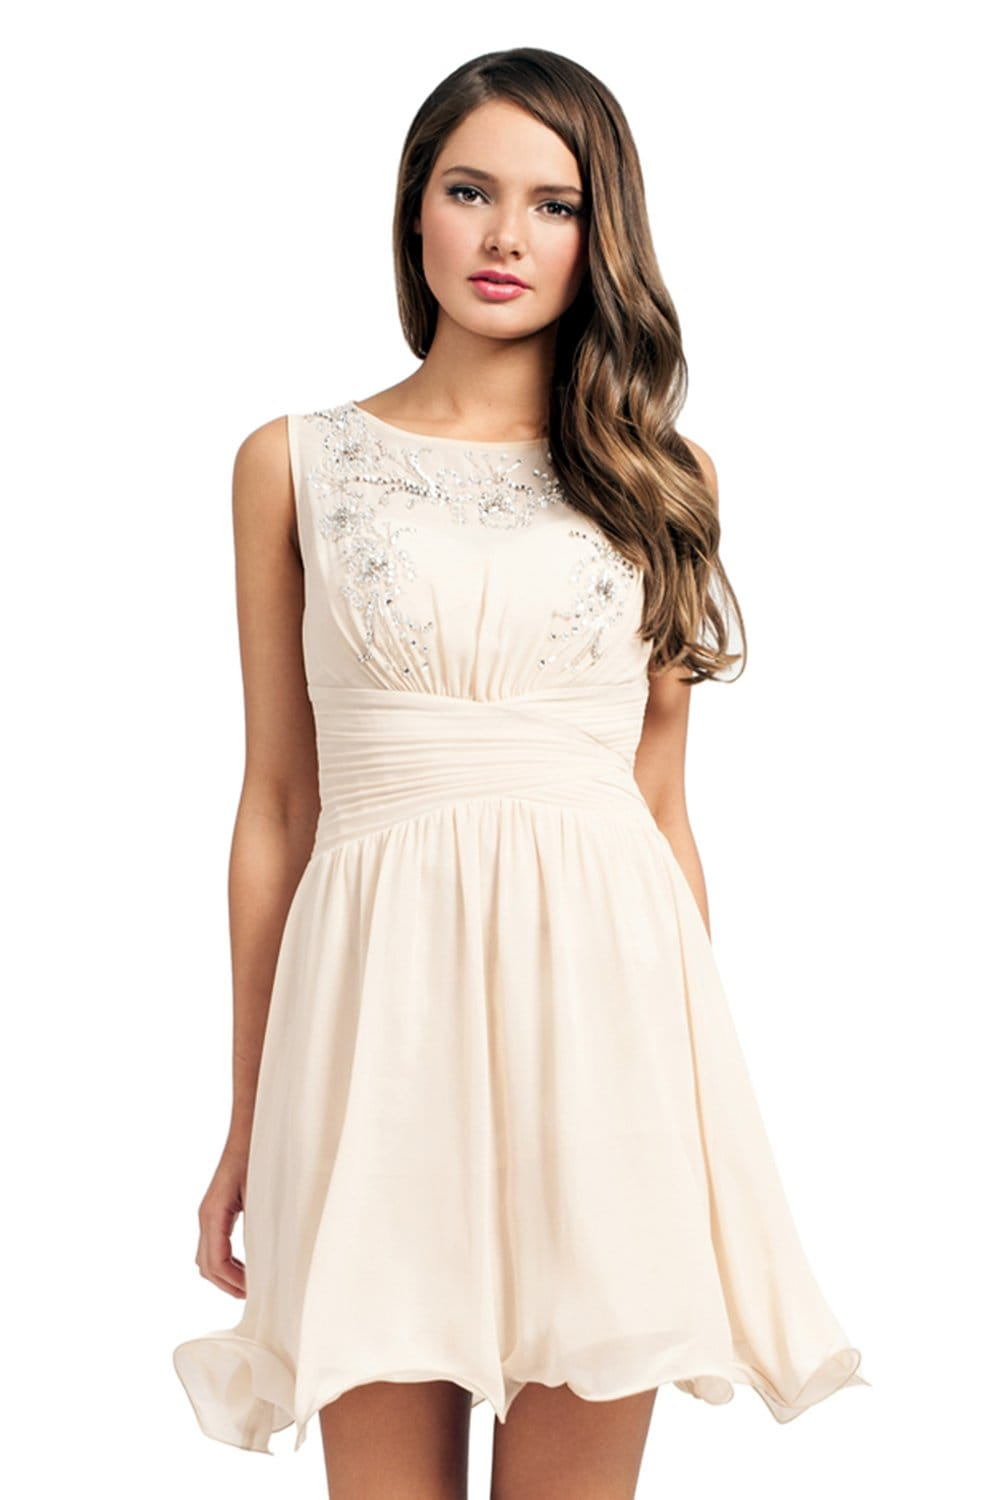 Find great deals on eBay for cream dress. Shop with confidence.